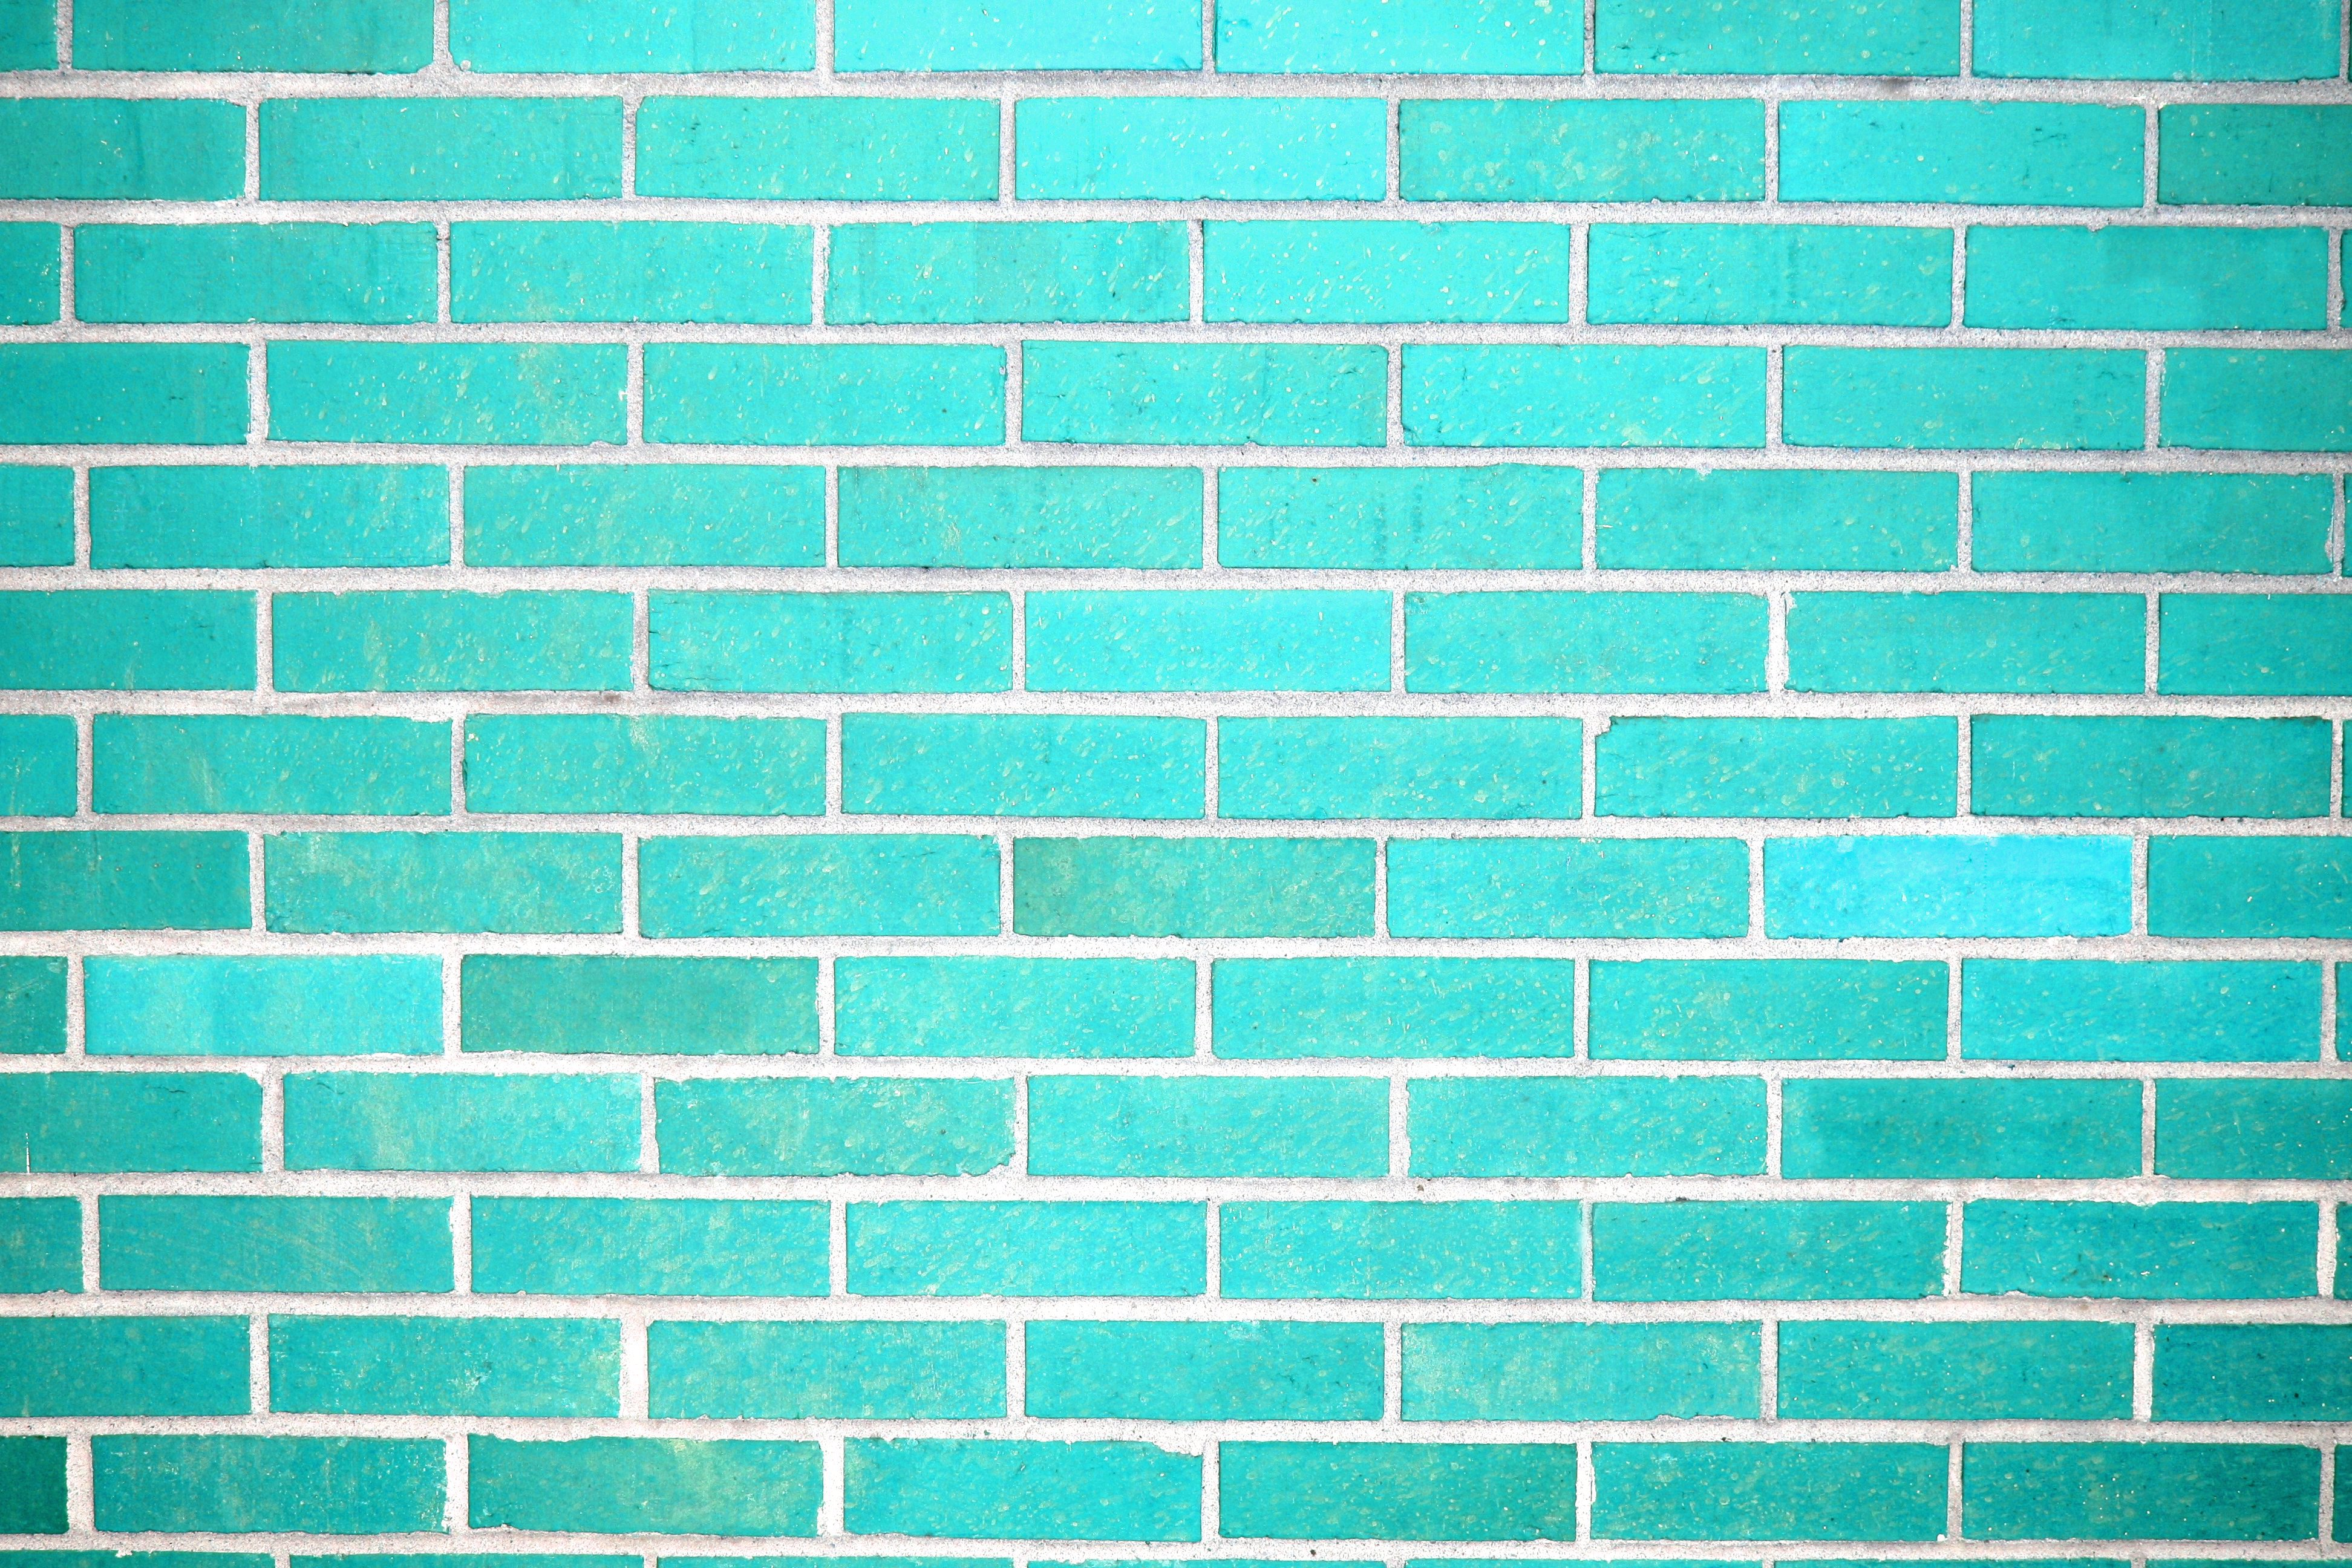 Turquoise Brick Wallpaper Teal Brick Wall Texture Photos Public Domain